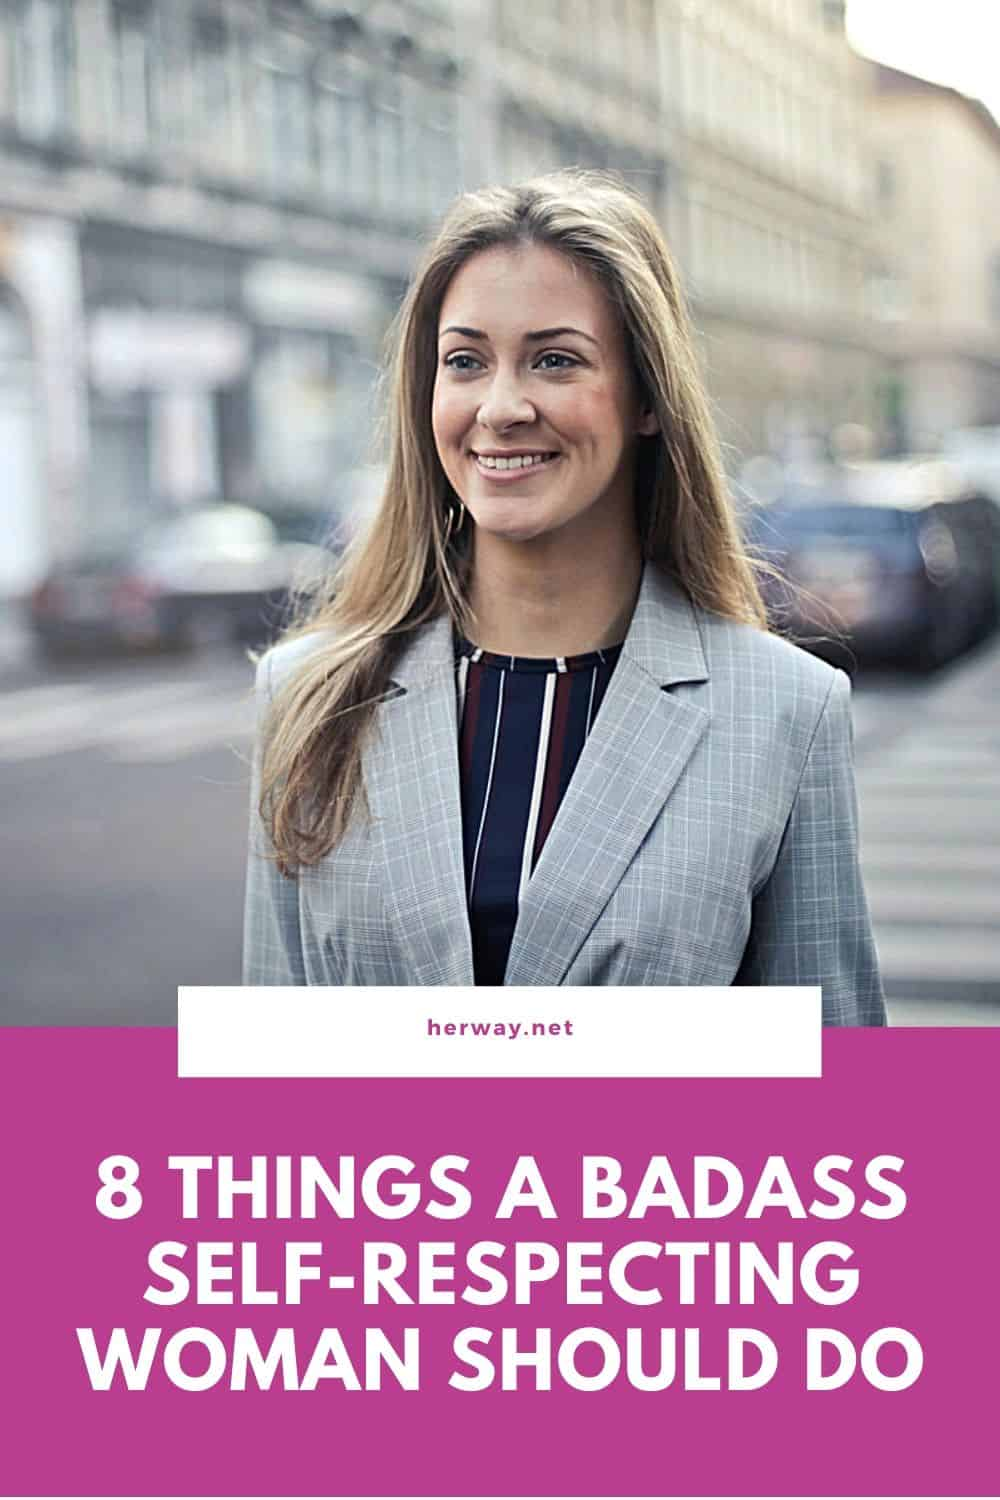 8 Things A Badass Self-Respecting Woman Should Do